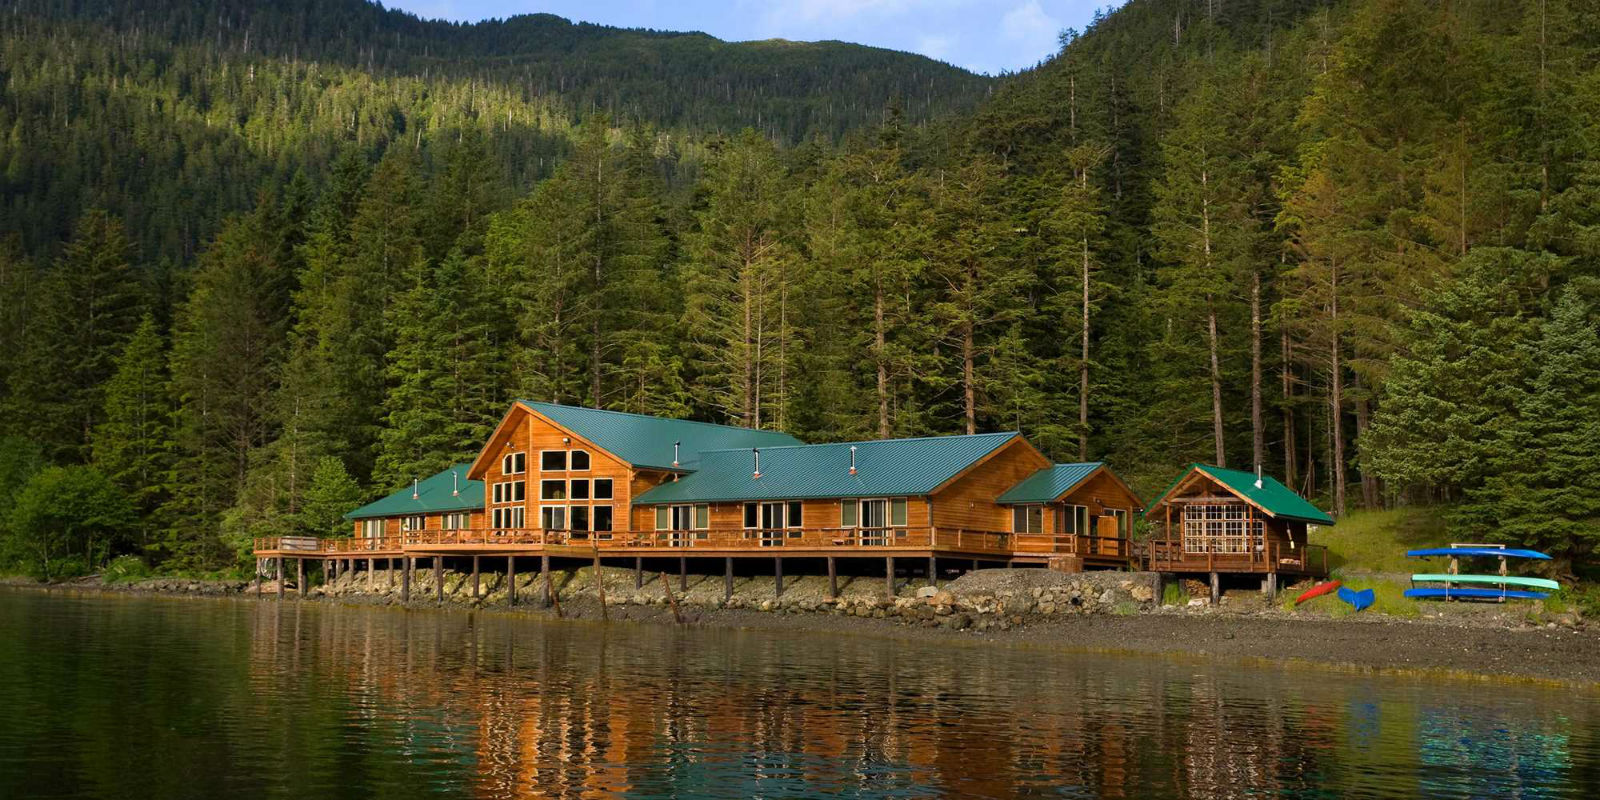 steamboat bay fishing club southeast alaska my alaskan